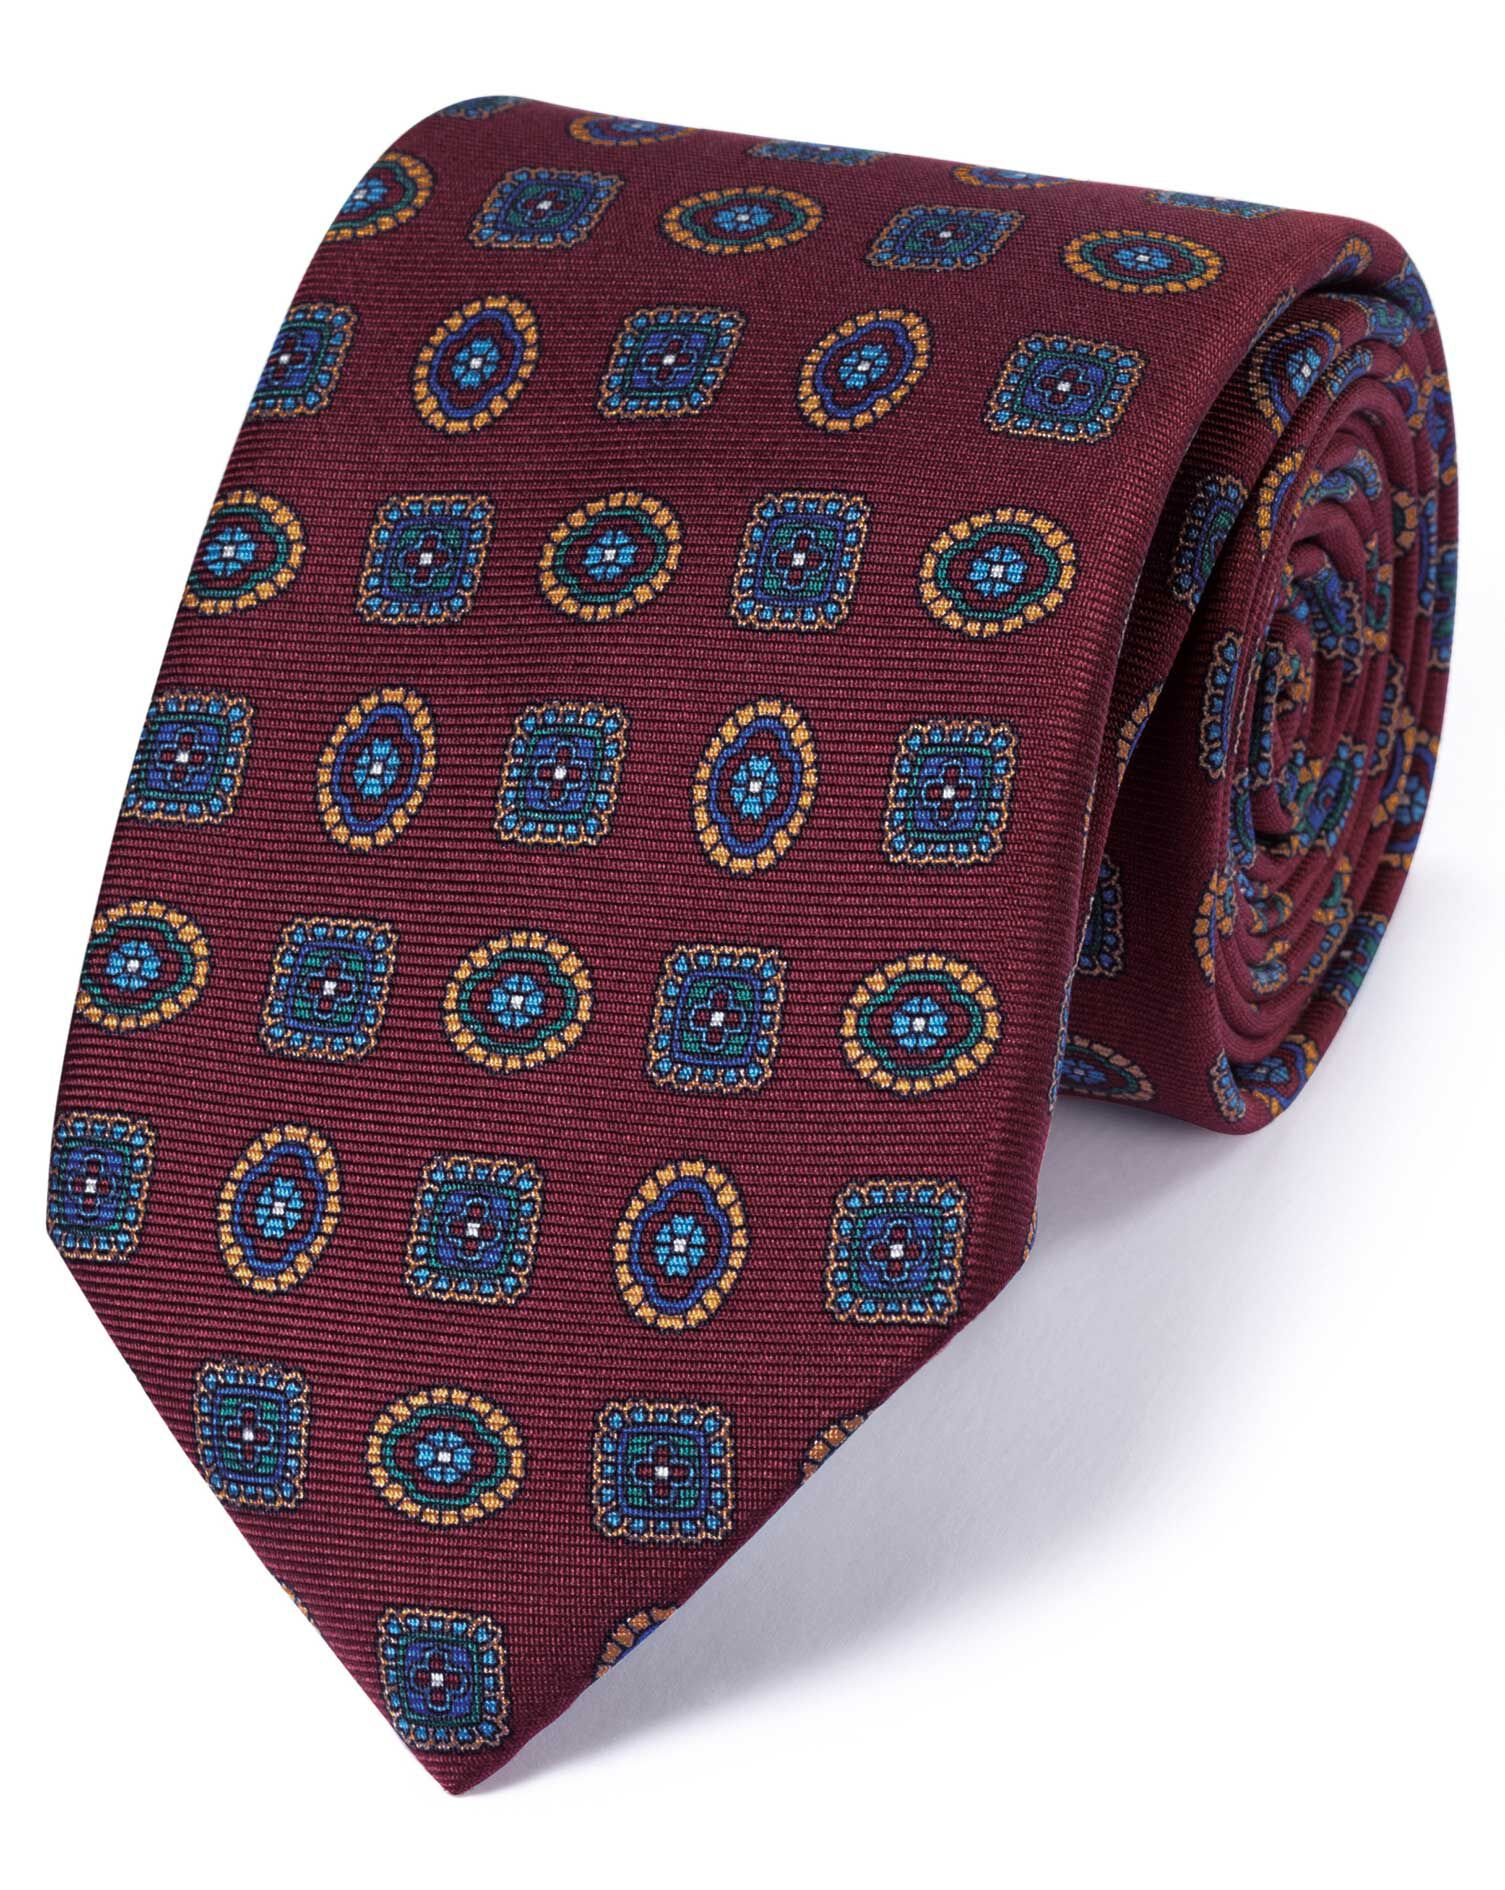 Burgundy Silk English Luxury Medallion Tie Size OSFA by Charles Tyrwhitt